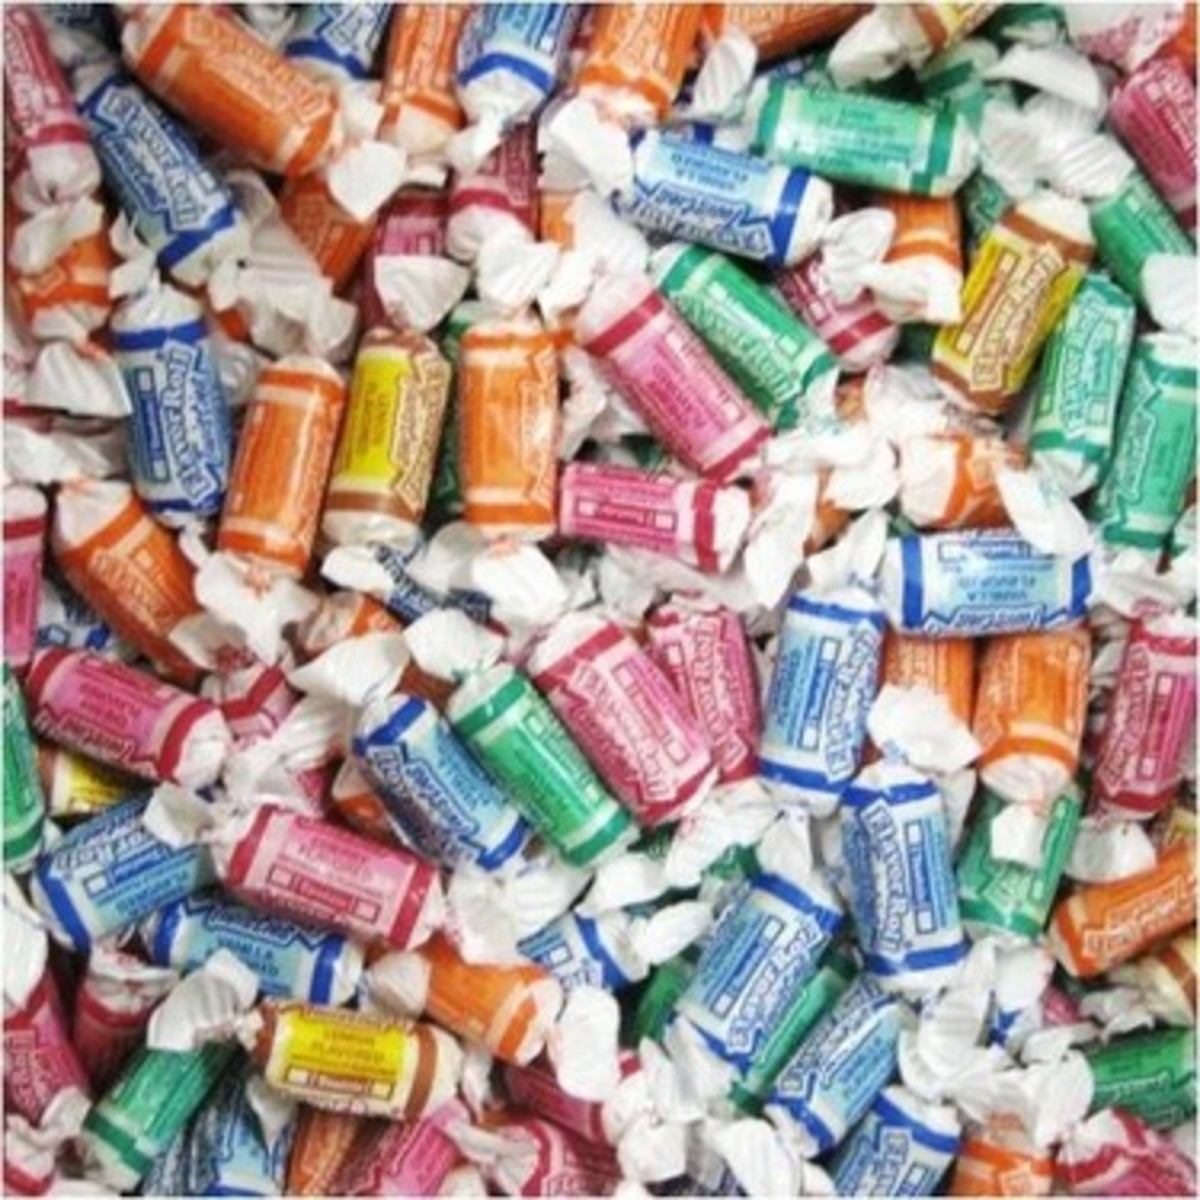 Tootsie rolls come in many different flavors.